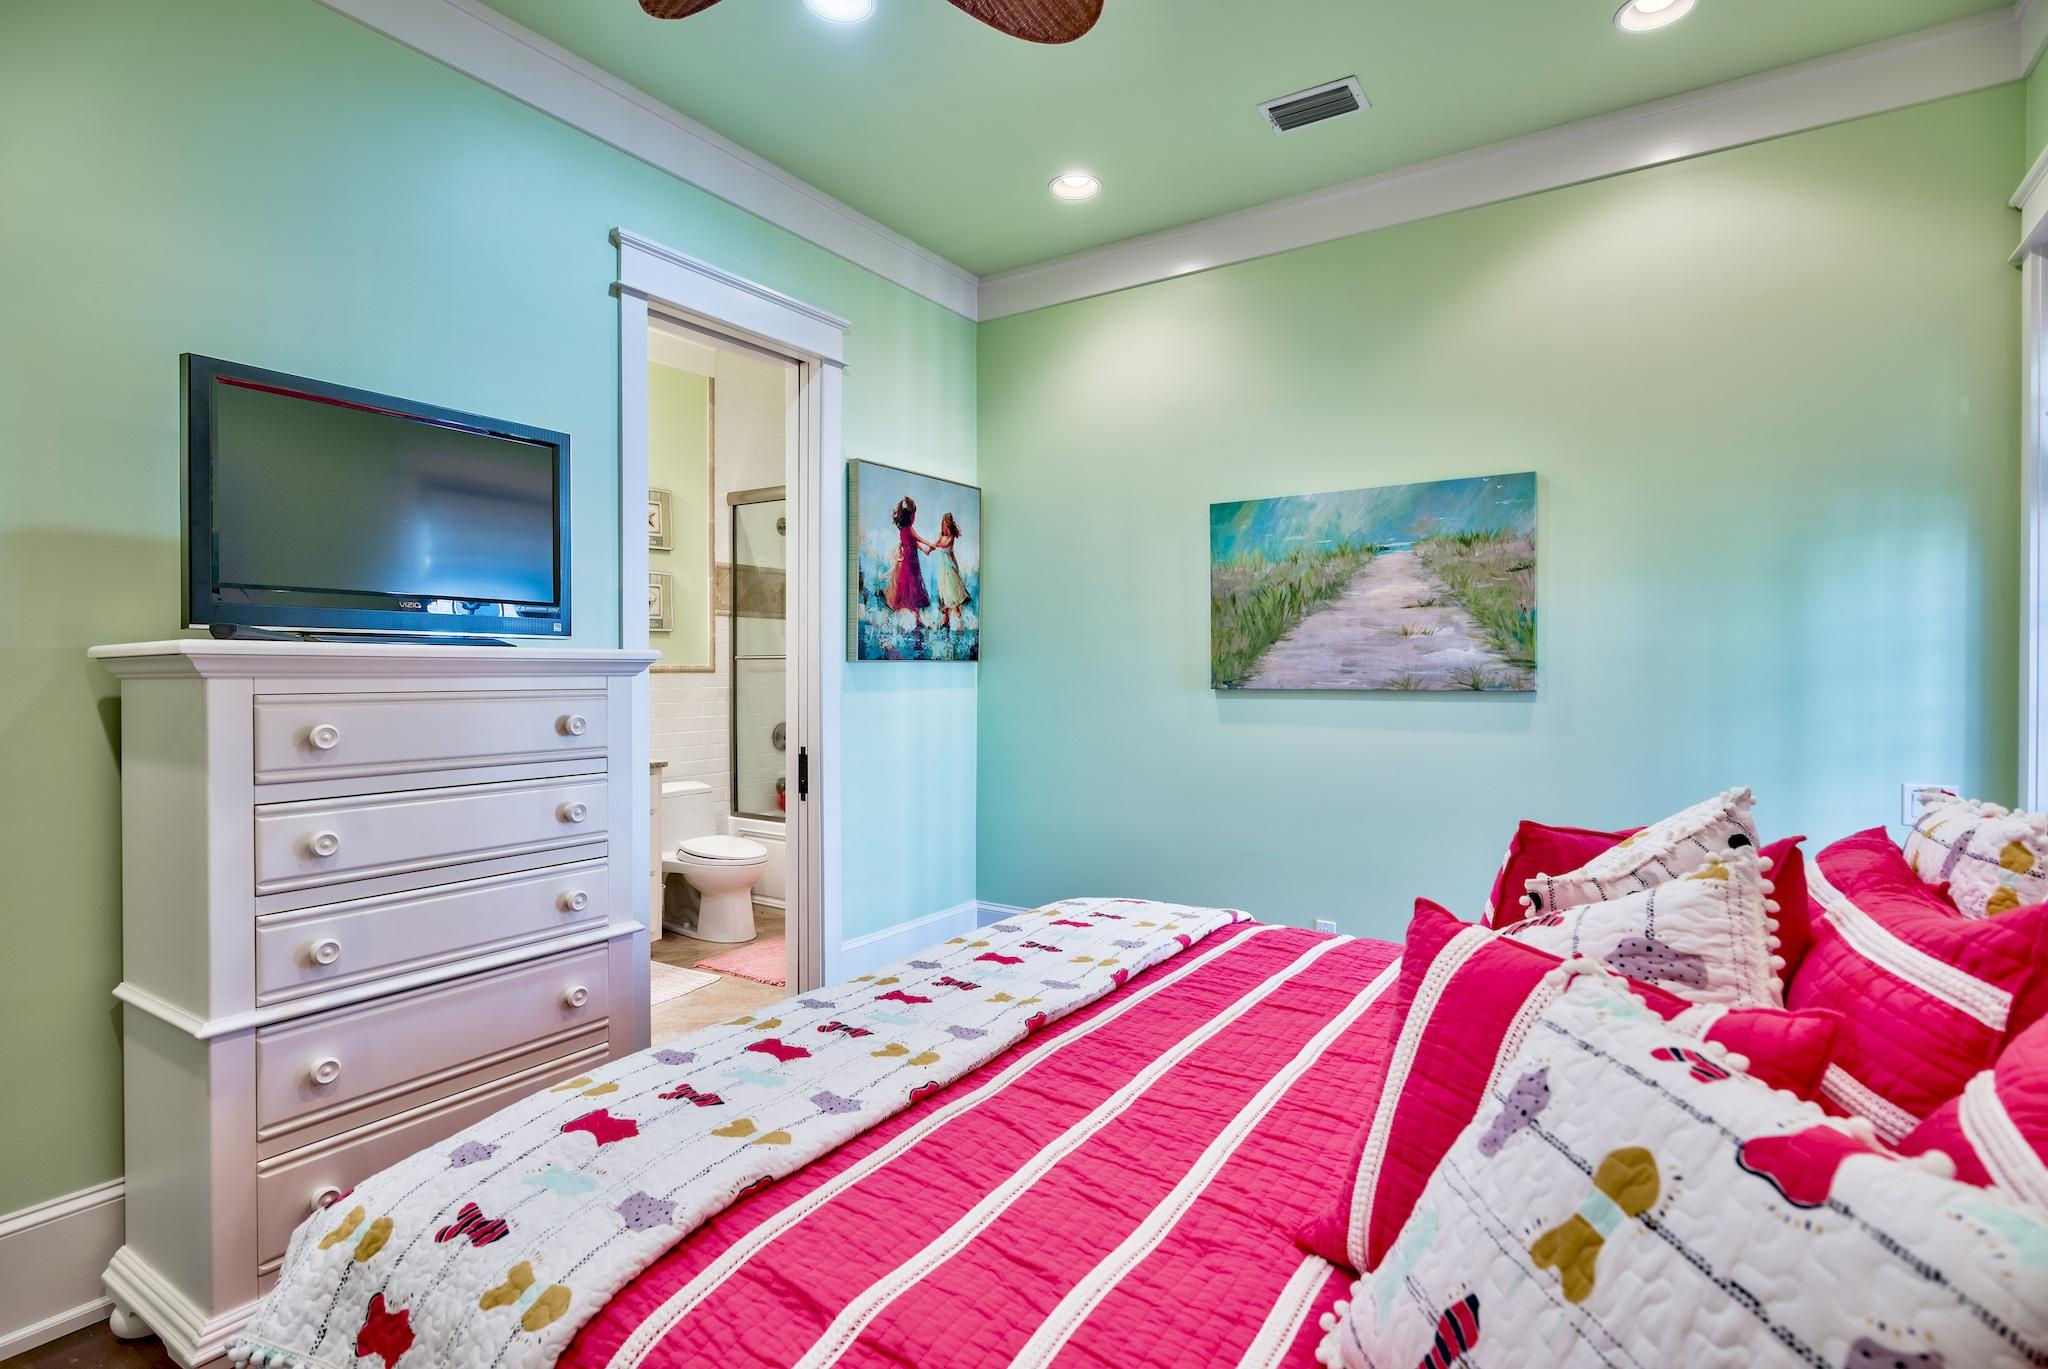 9 Founders,Watersound,Florida 32461,5 Bedrooms Bedrooms,5 BathroomsBathrooms,Detached single family,Founders,20131126143817002353000000